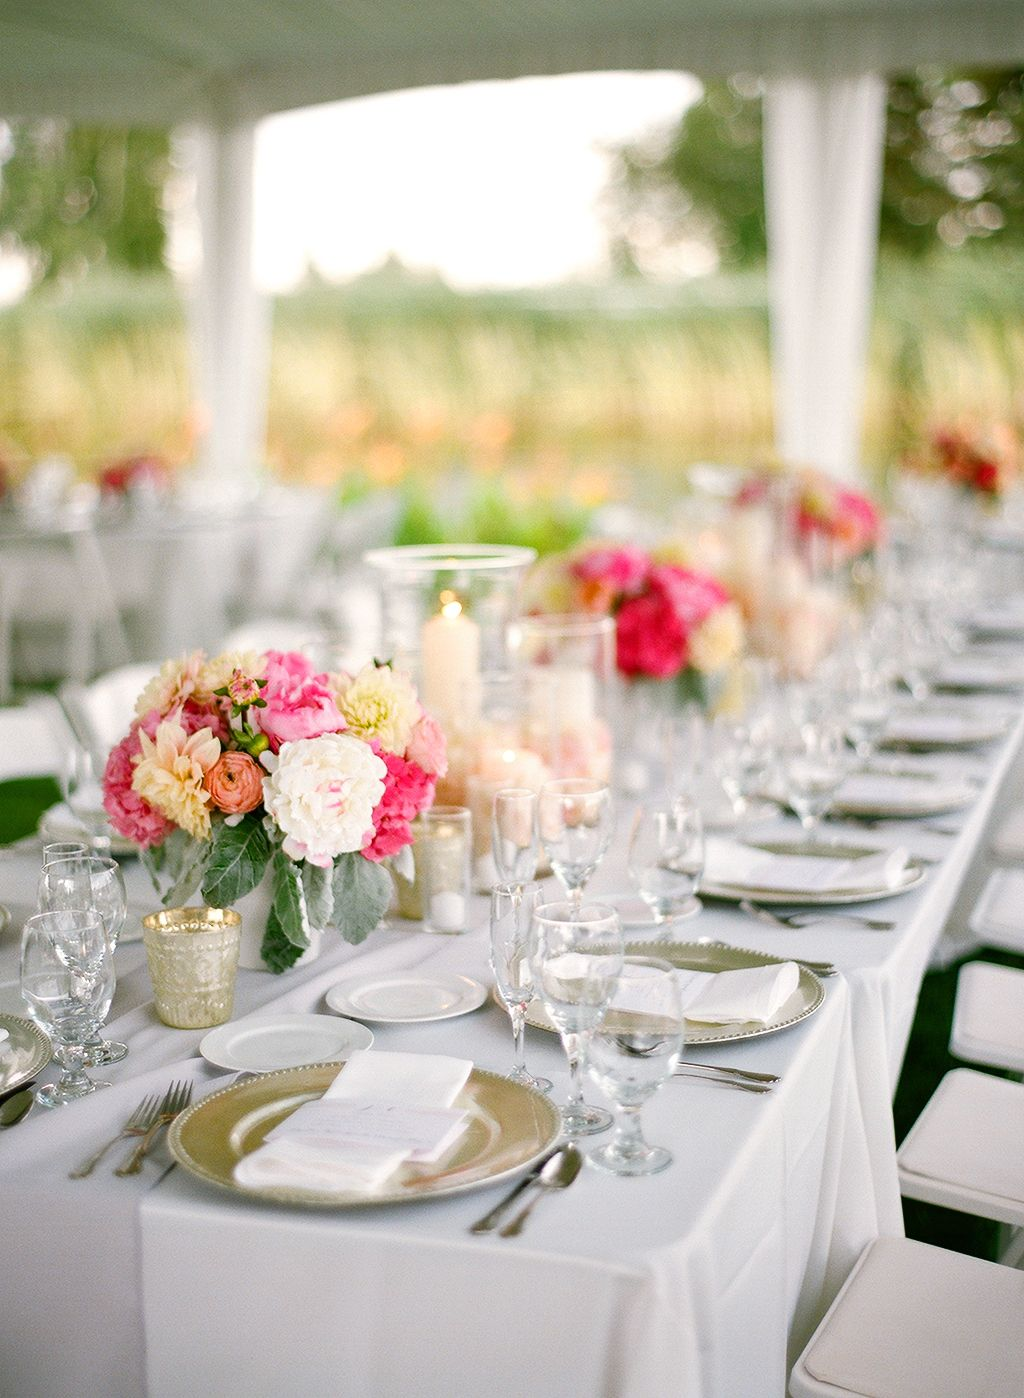 Wedding room decoration ideas  Gal Meets Glam Our Wedding T  Love  Pinterest  Gal meets glam